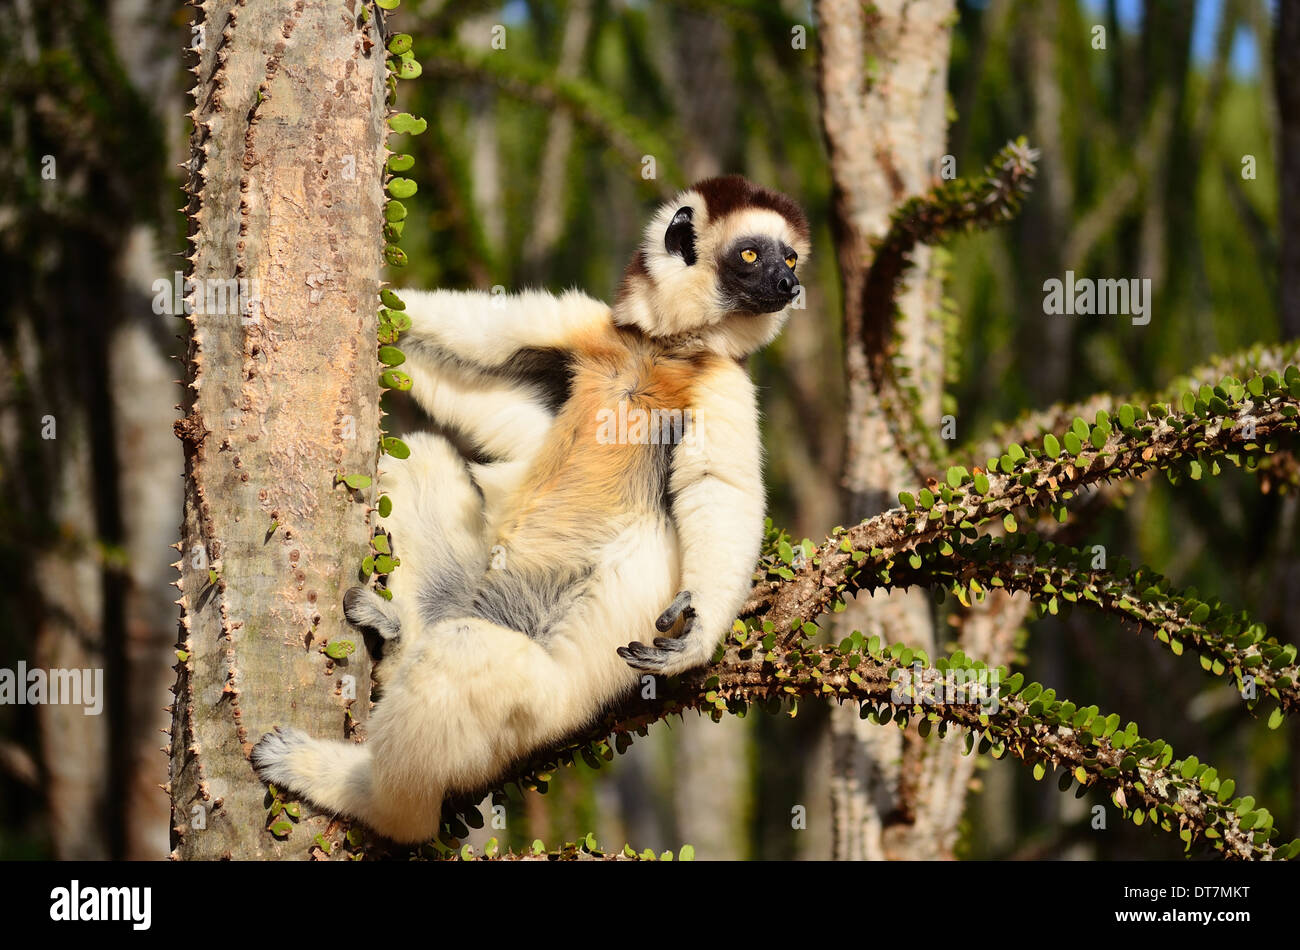 stylish sifaka siting comfortably on spiny branch - Stock Image